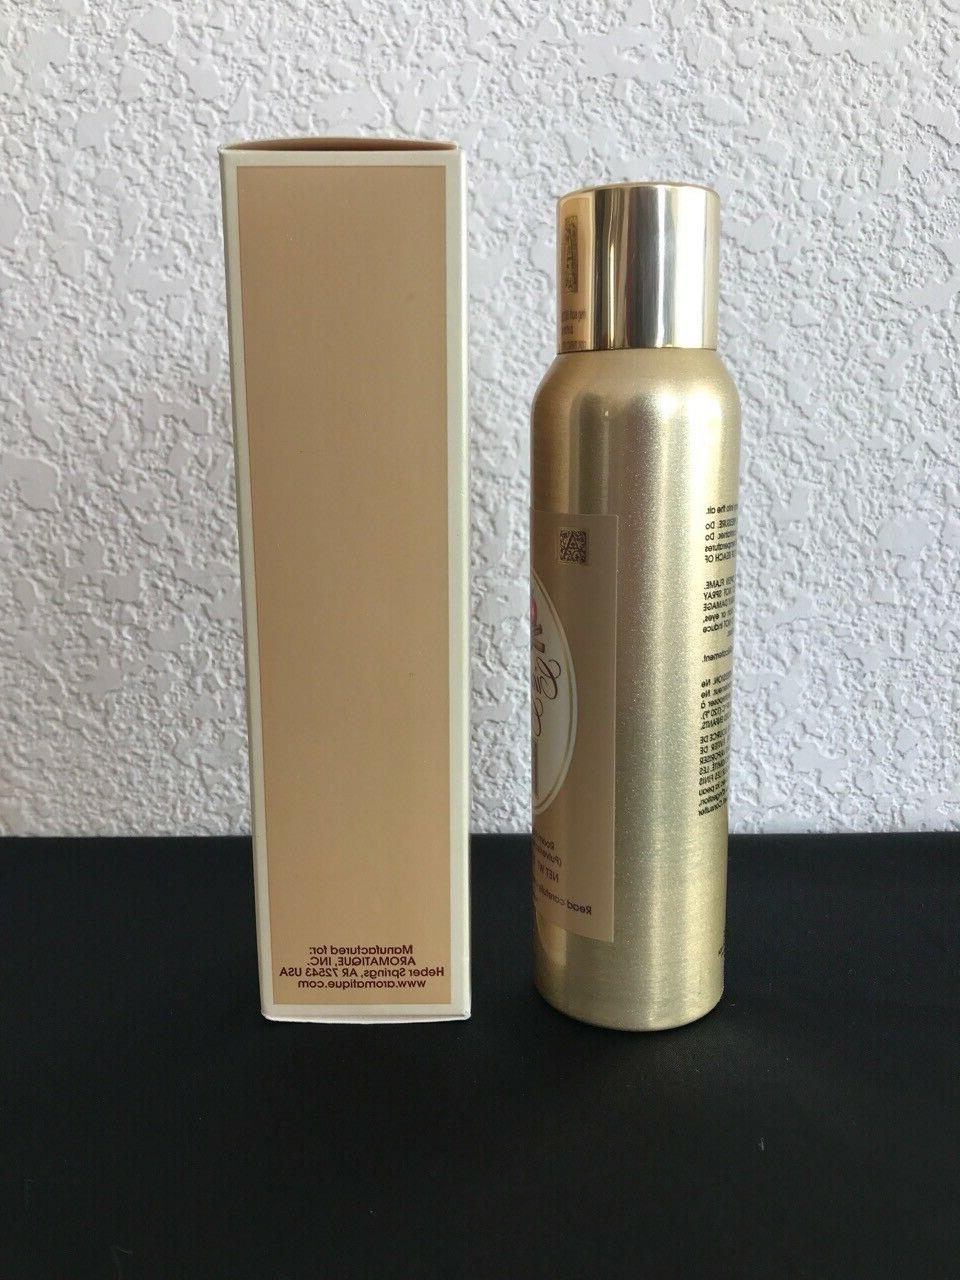 Aromatique Cinnamon Fragrance Air